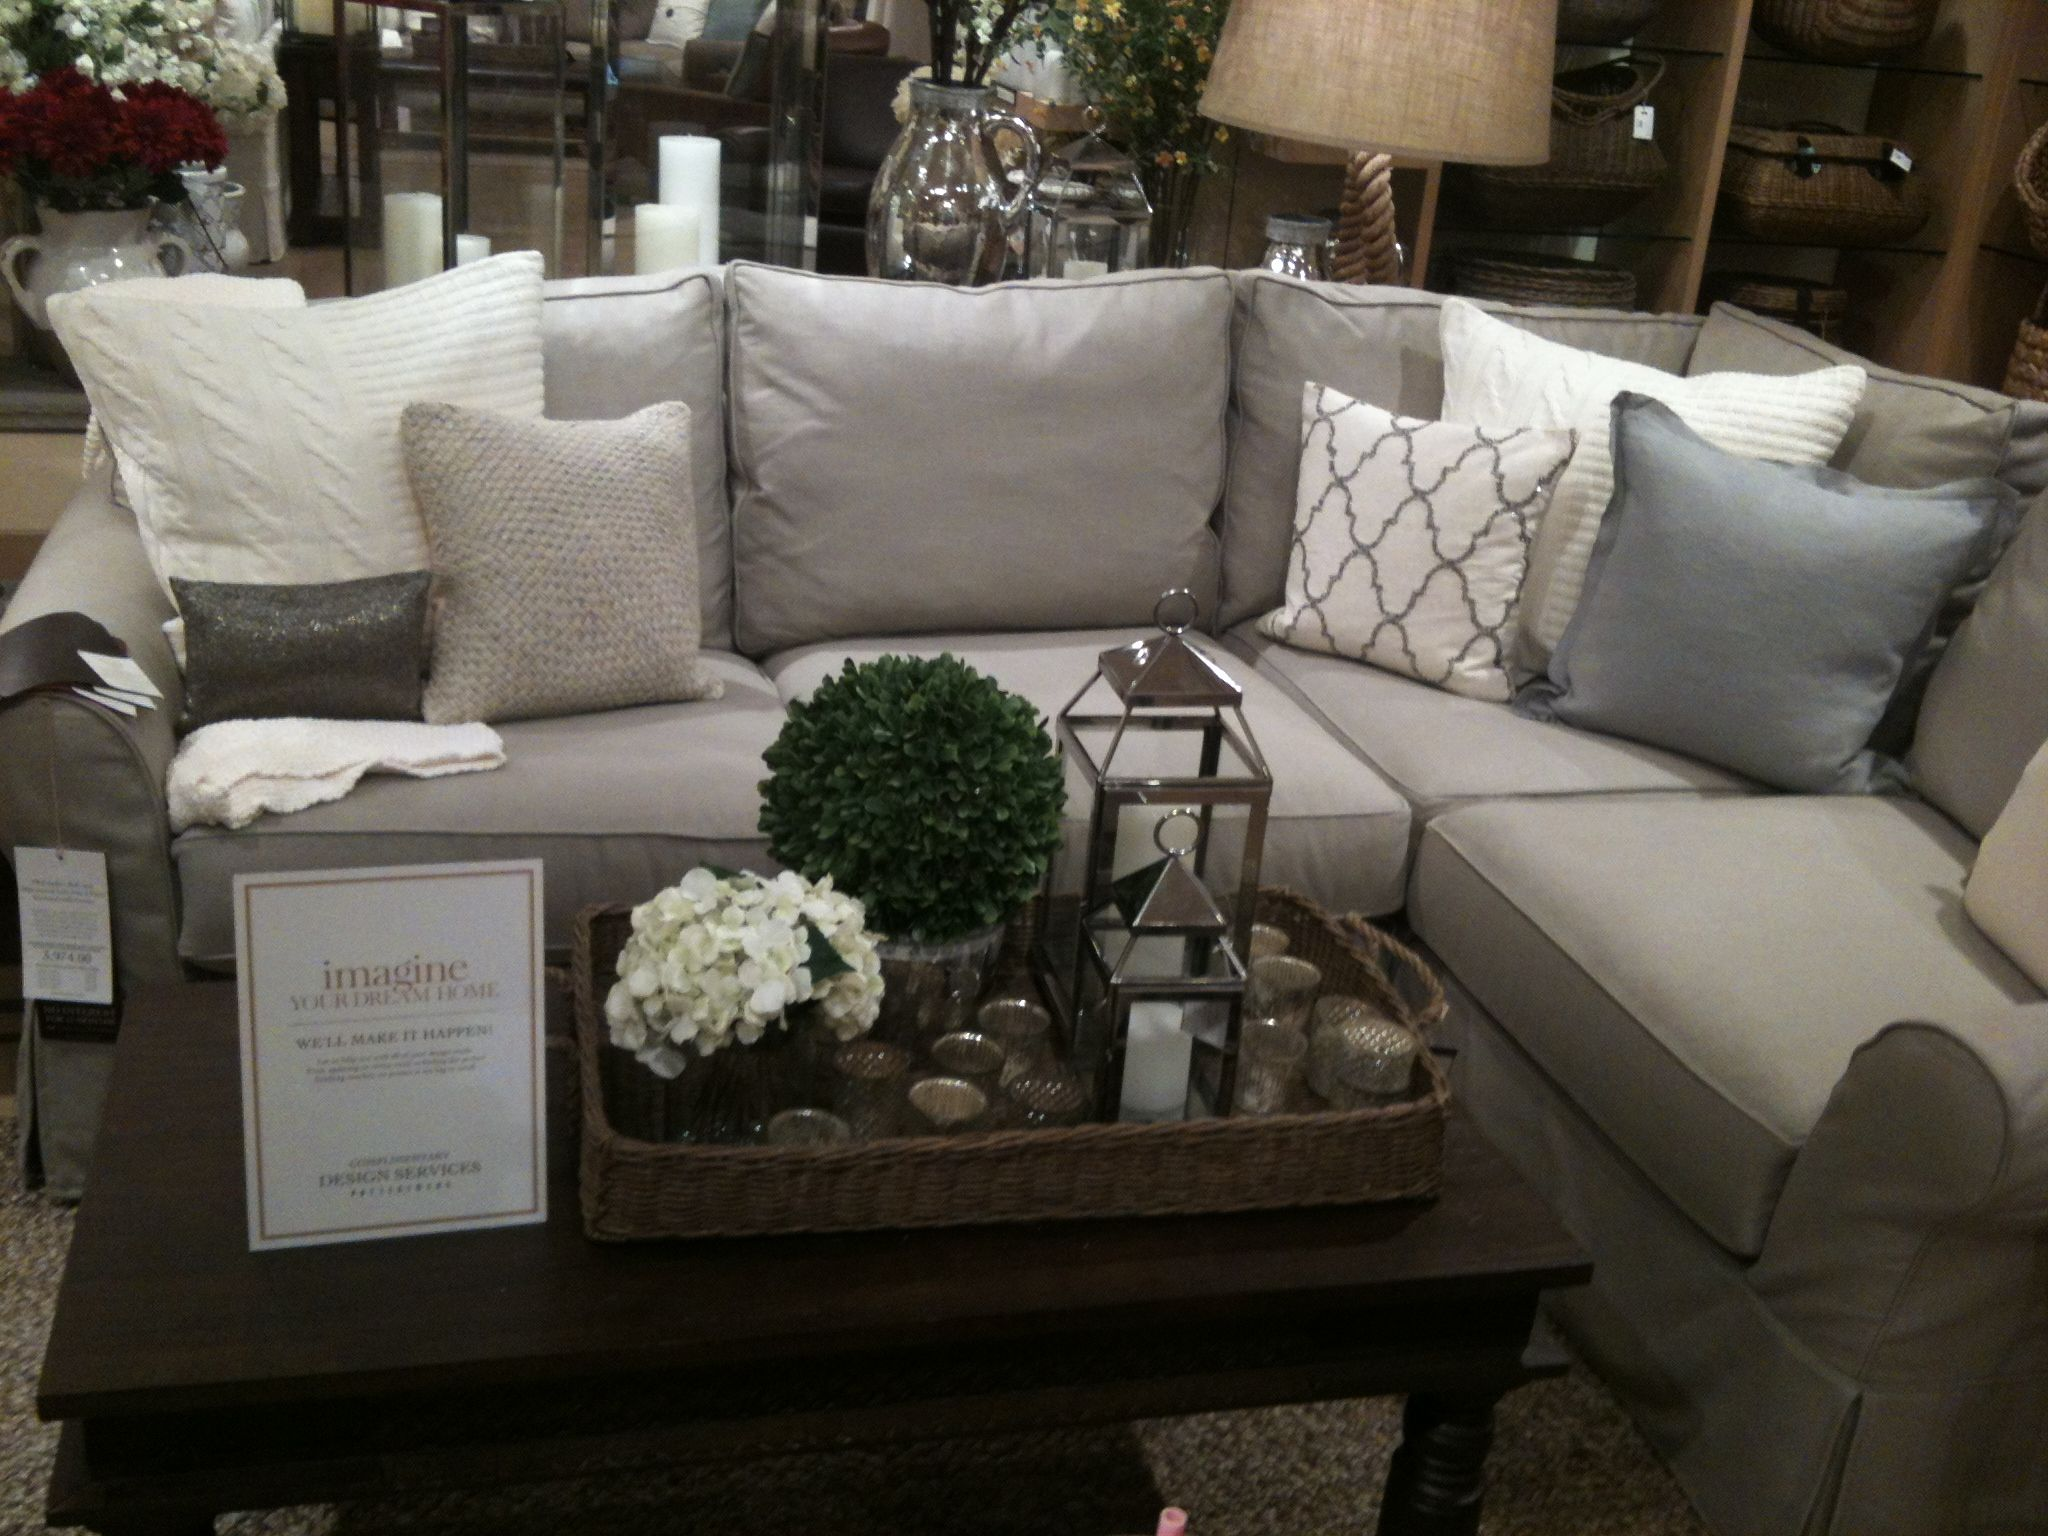 Modern Family Pillows On Couch : Living room sofa- pottery barn sectional. Pillows Family Rooms Pinterest Pottery barn ...